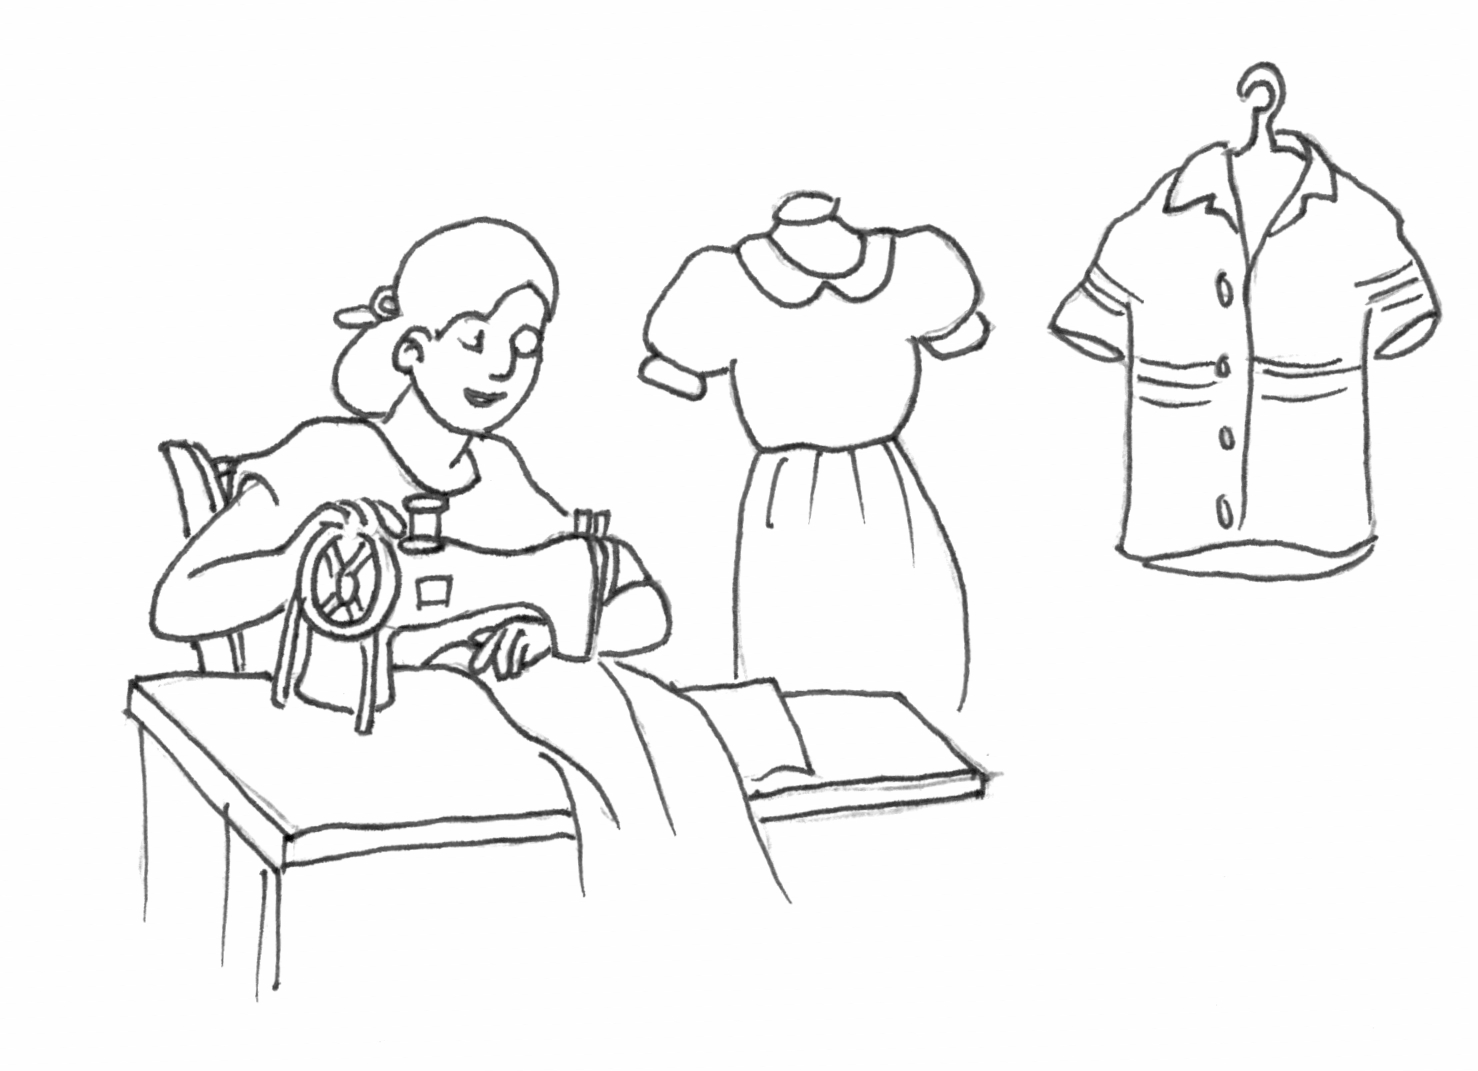 wordgirl coloring pages | Tailor Drawing at GetDrawings.com | Free for personal use ...